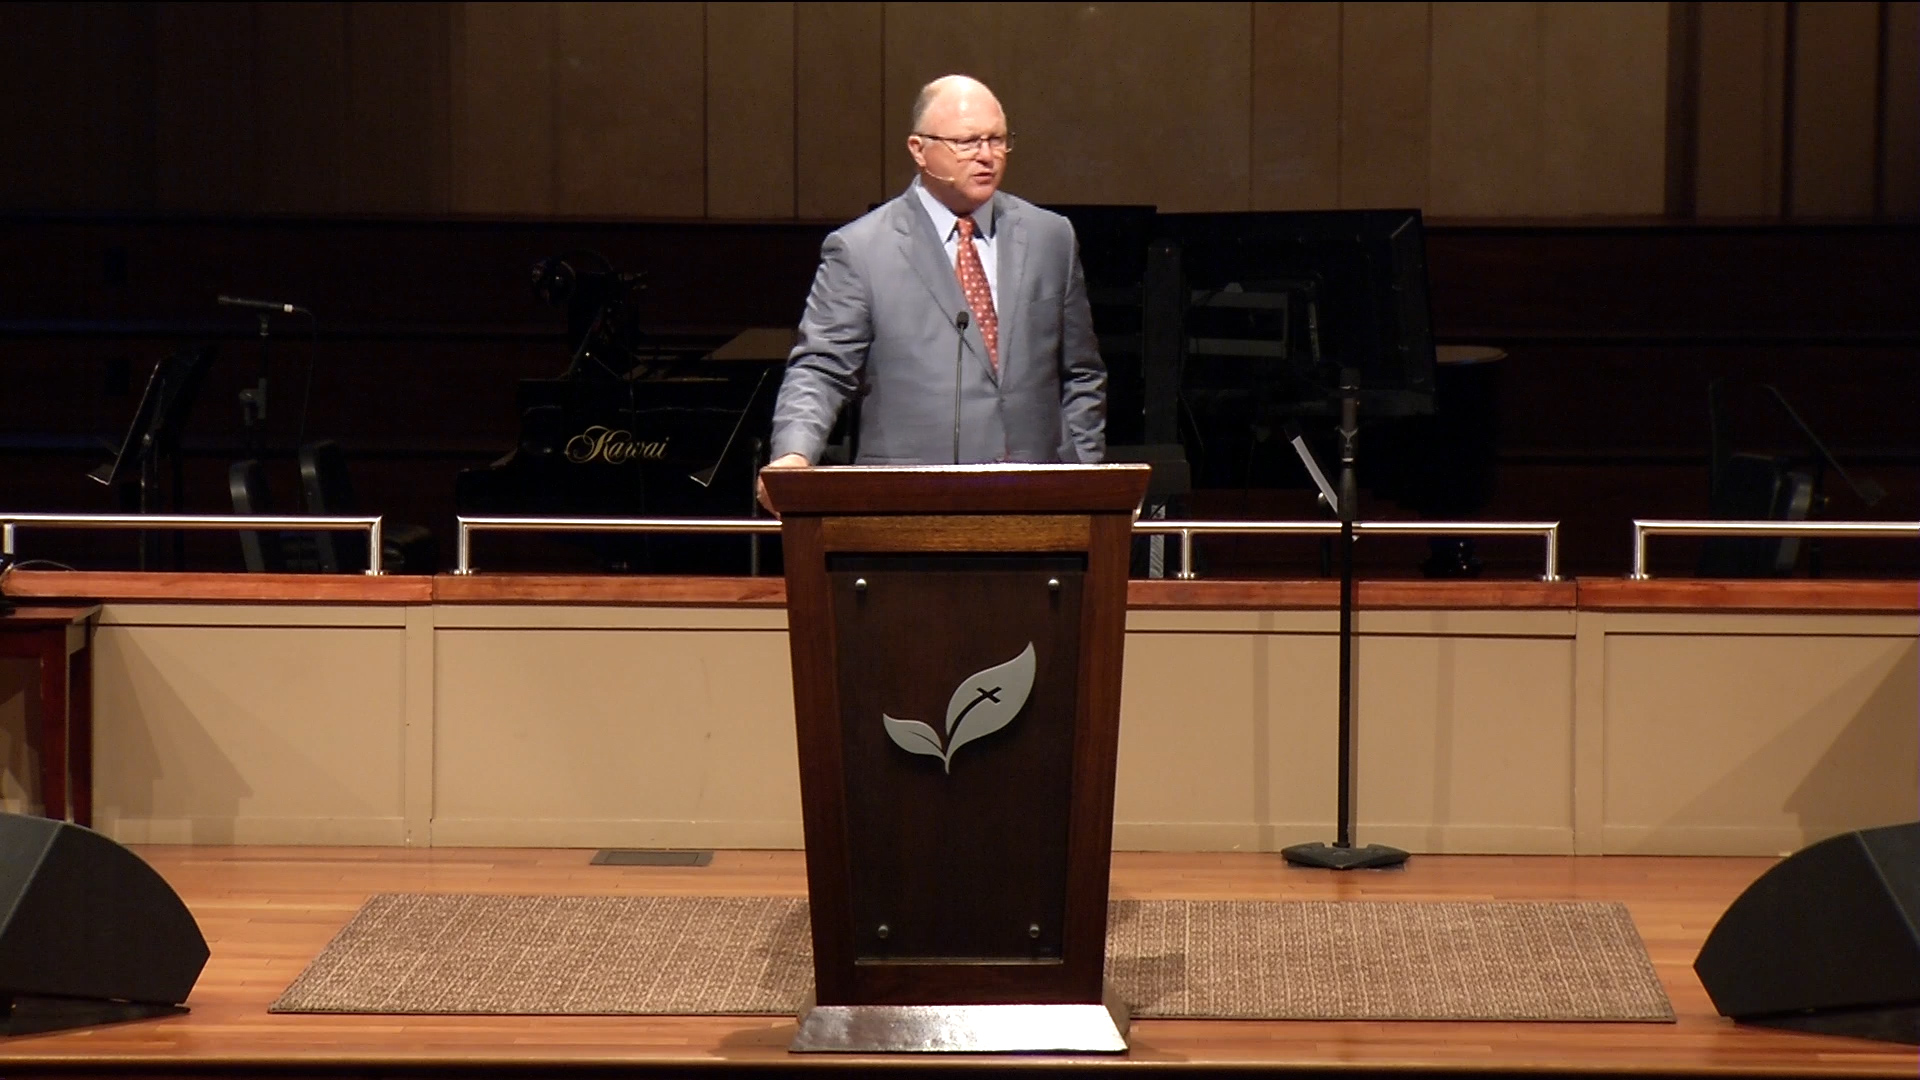 Pastor Paul Chappell: Freedom of a True Disciple